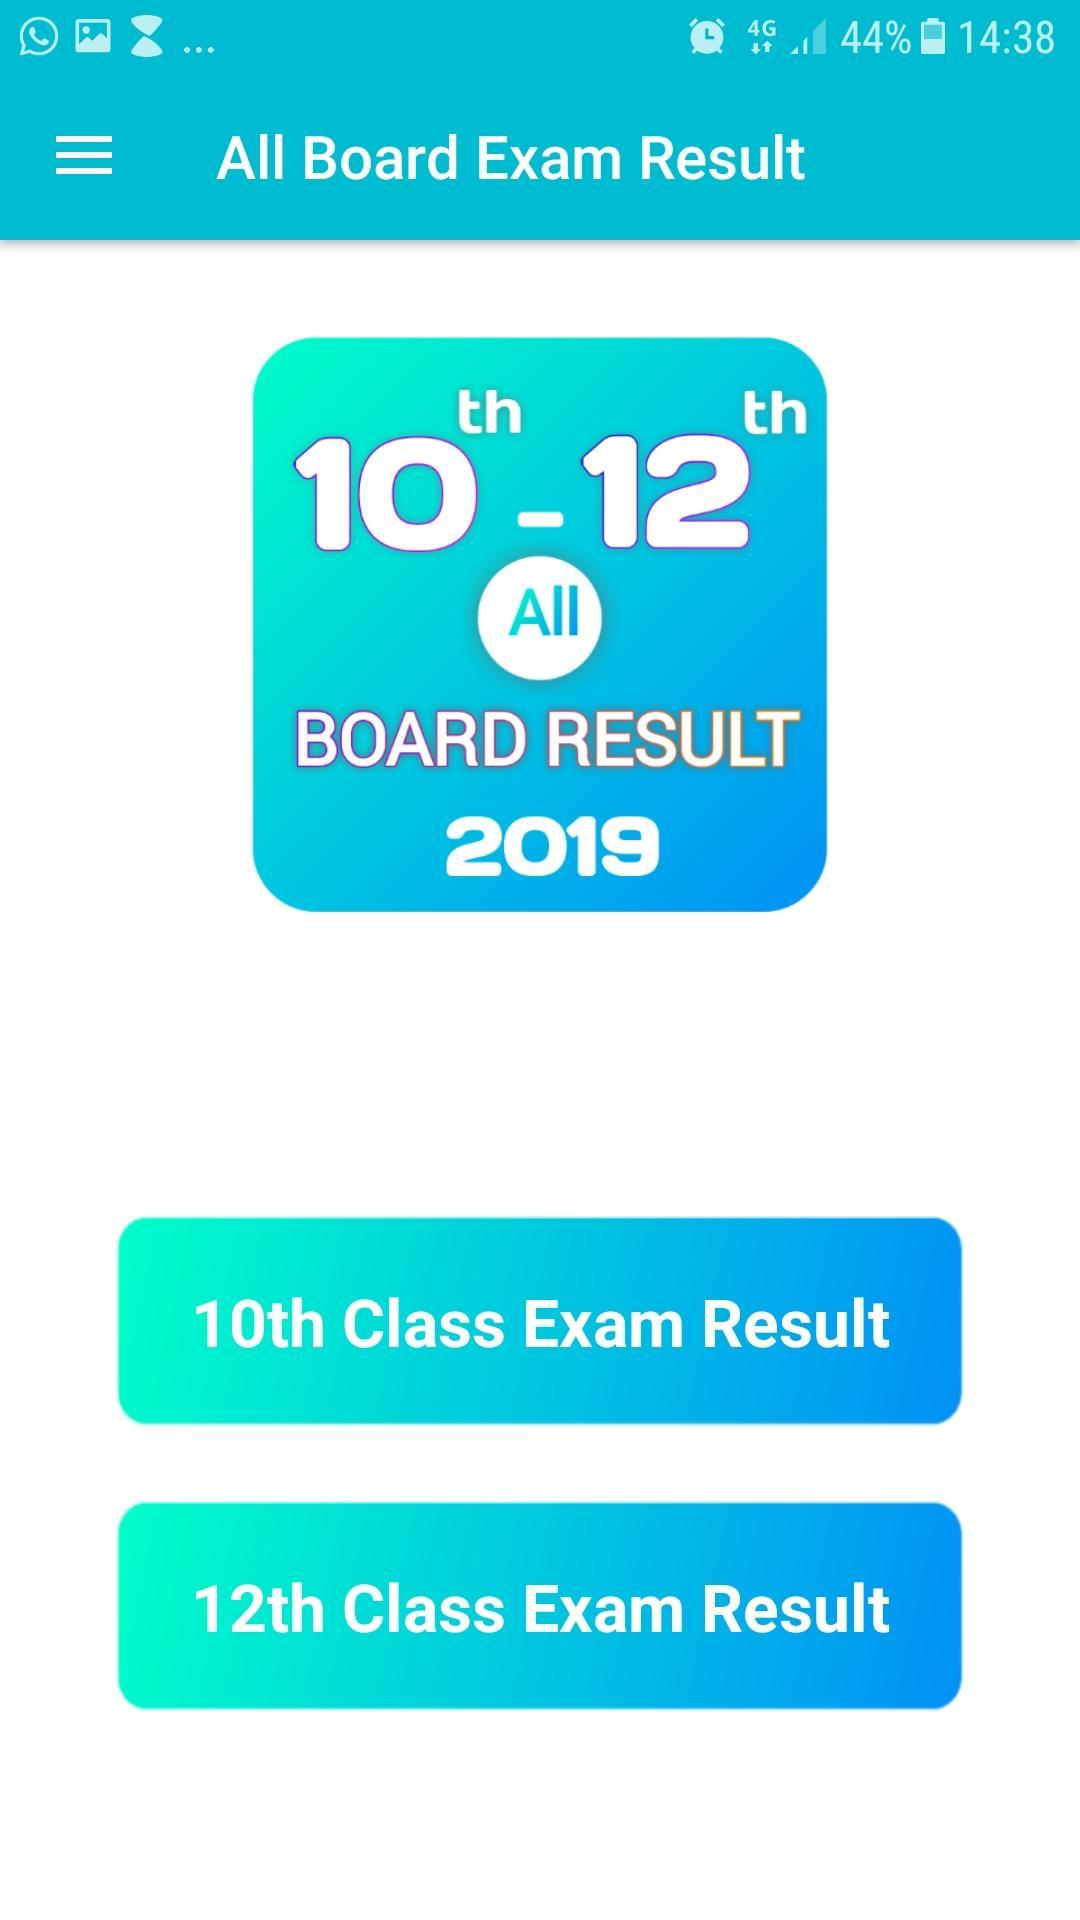 10th 12th Board Exam Result 2019 All India for Android - APK